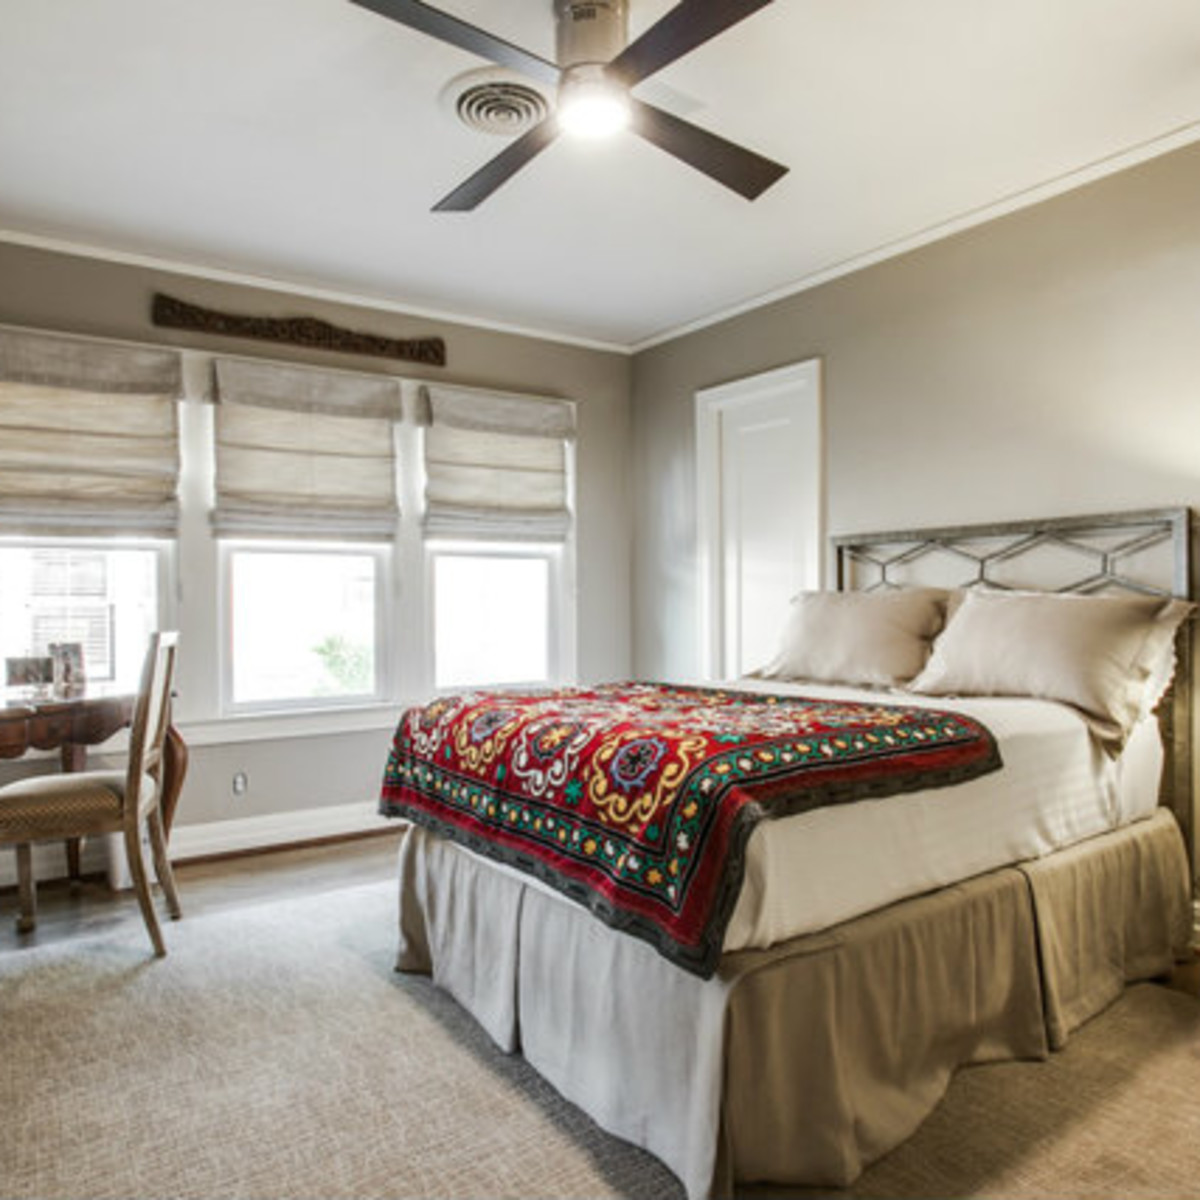 Bedroom at 811 Monte Vista Dr. in Dallas